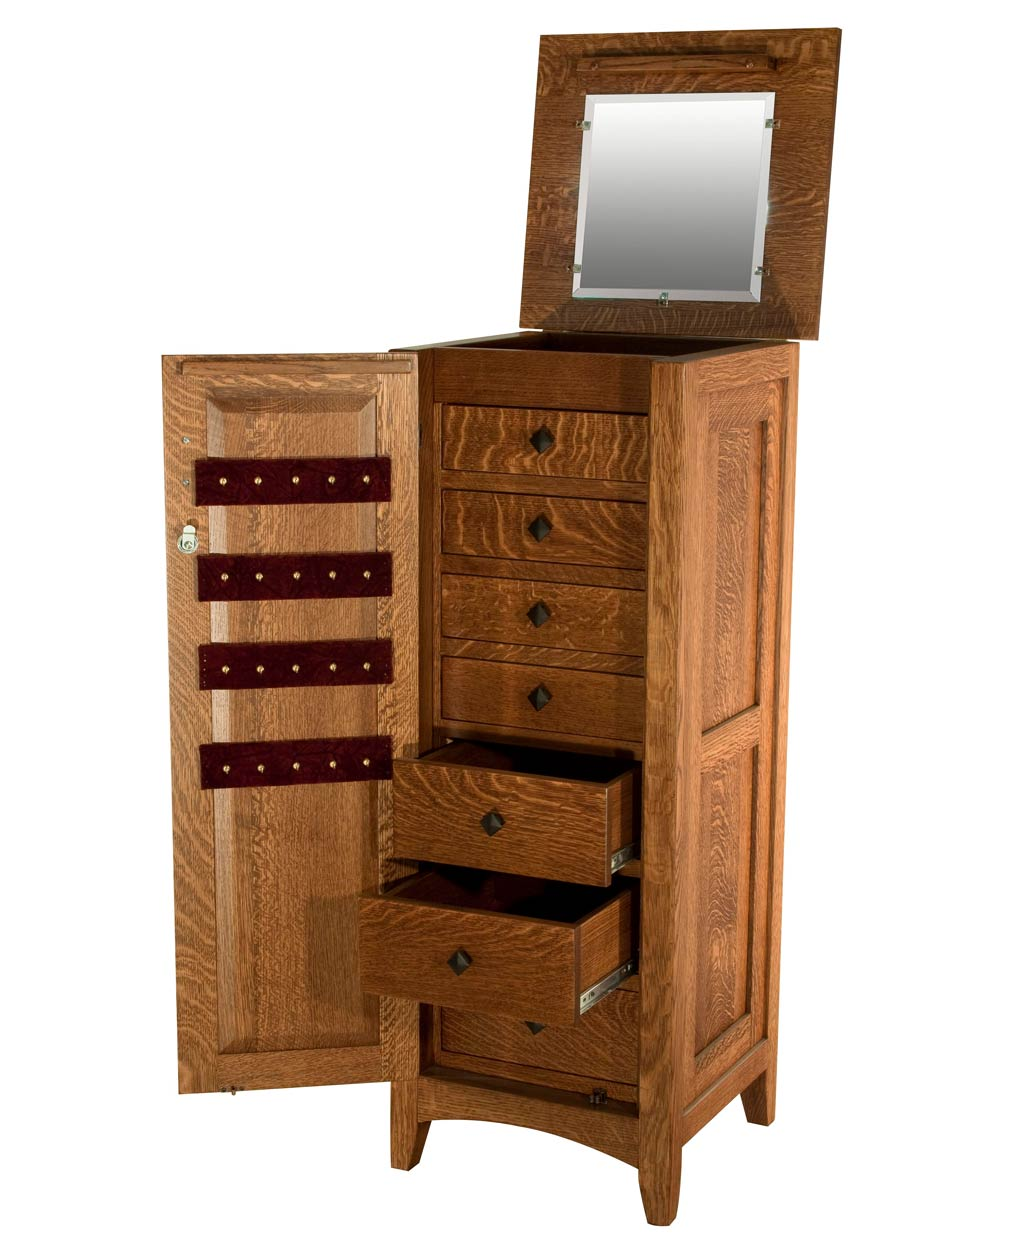 Flush Mission Jewelry Armoire with Lockable Door [Opened]